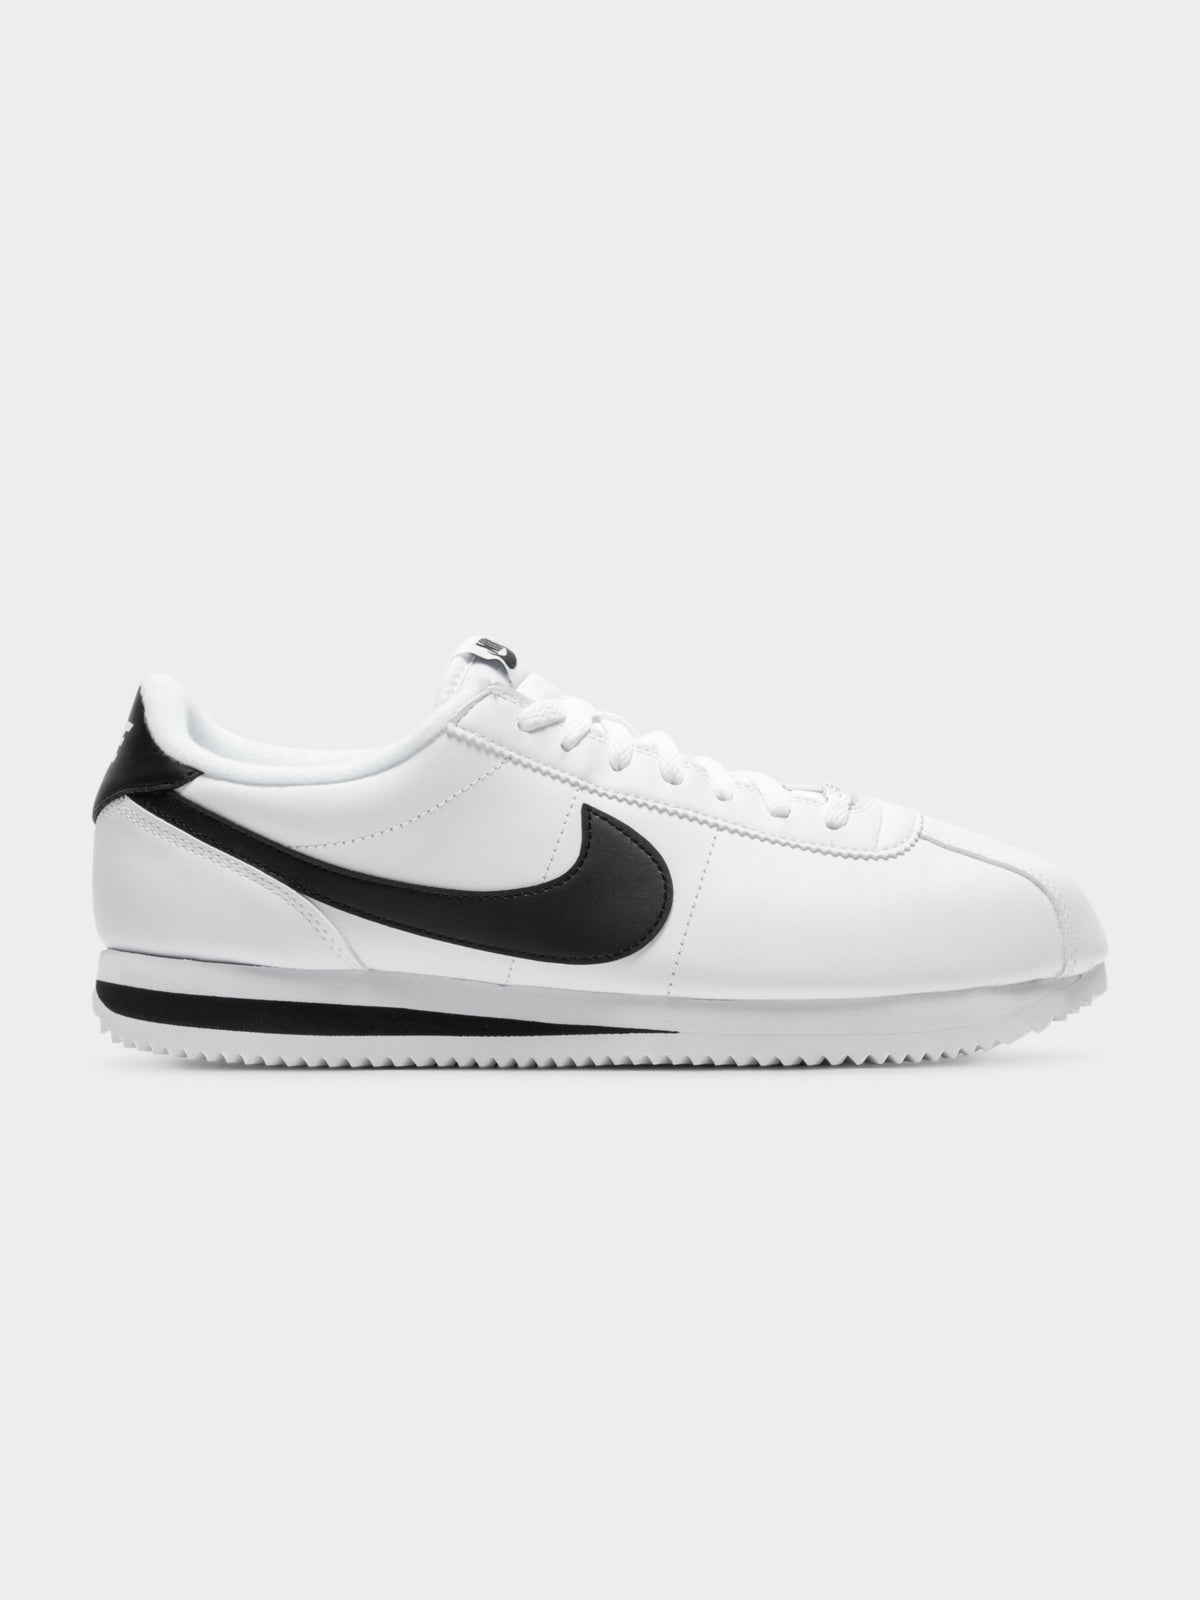 Mens Basic Cortez Sneakers in White & Black Leather